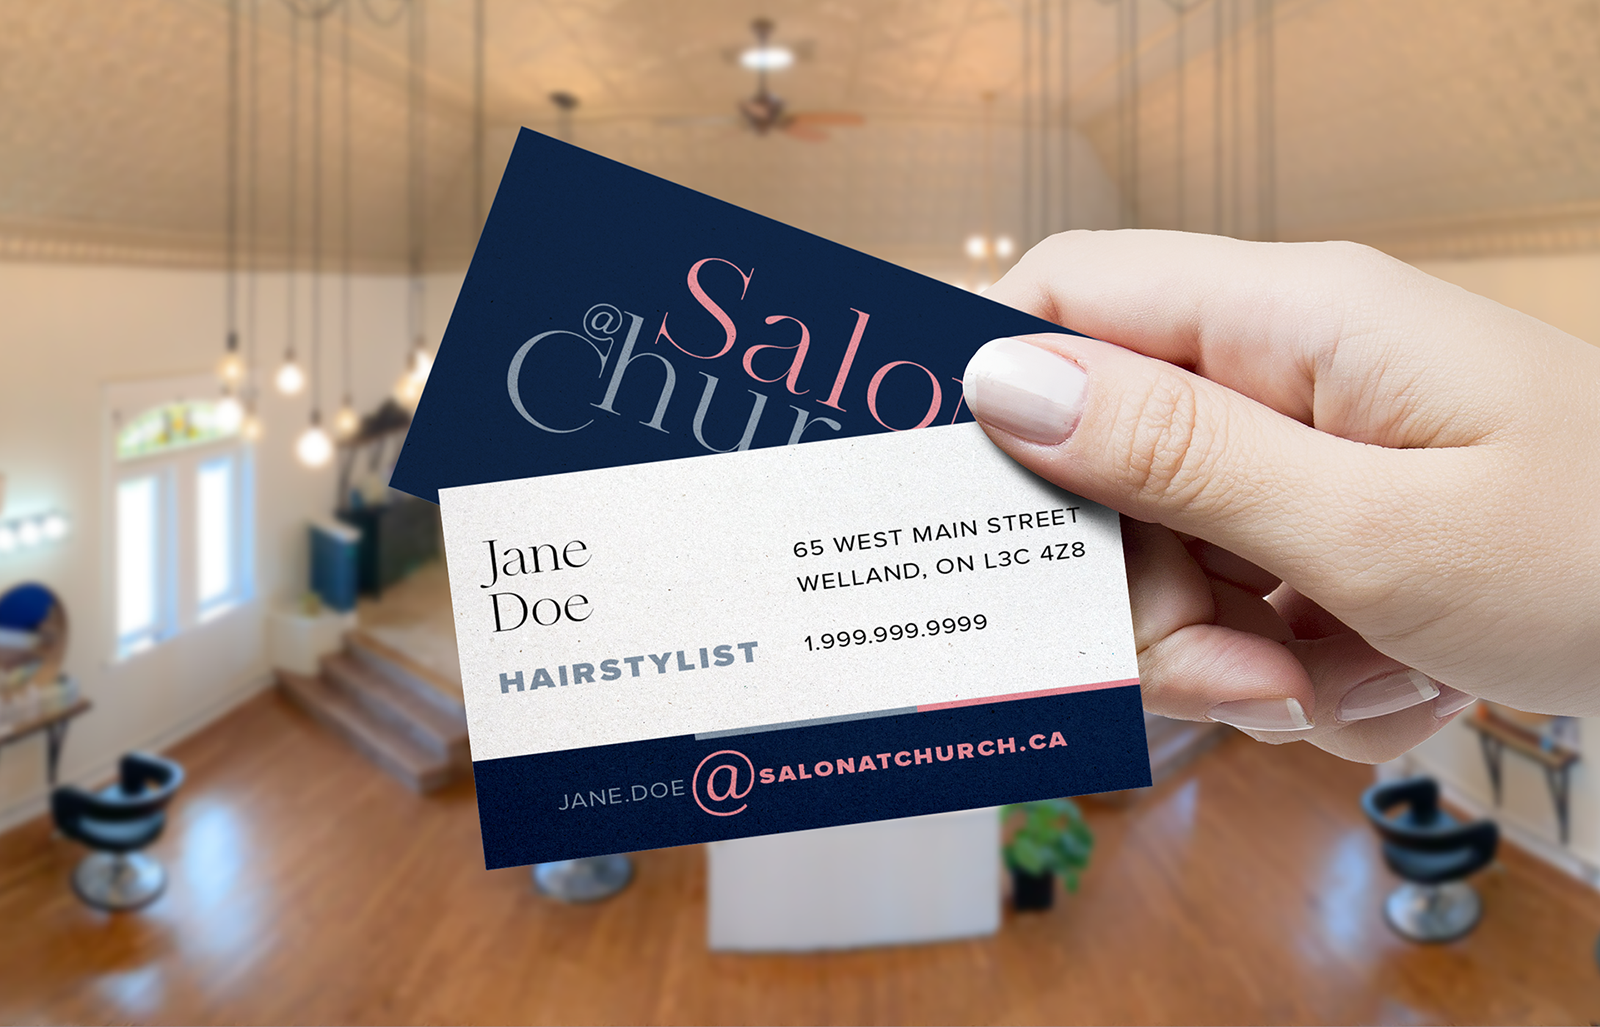 H&C - AtChurch Business Card Mockup